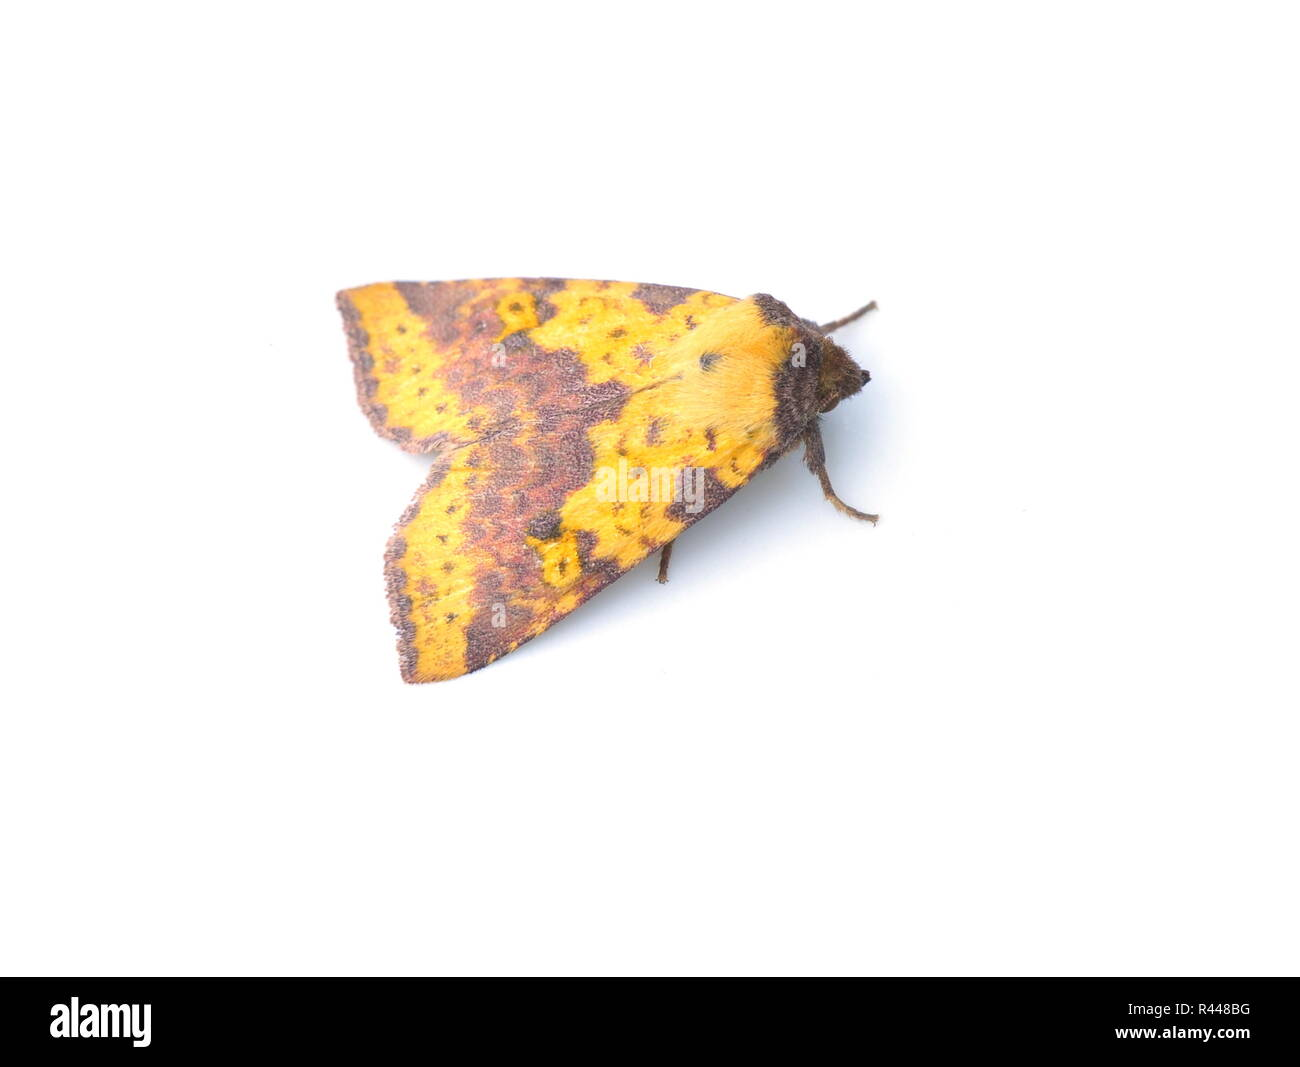 Nocturnal Pink-barred Sallow moth Xanthia togata isolated on white background - Stock Image